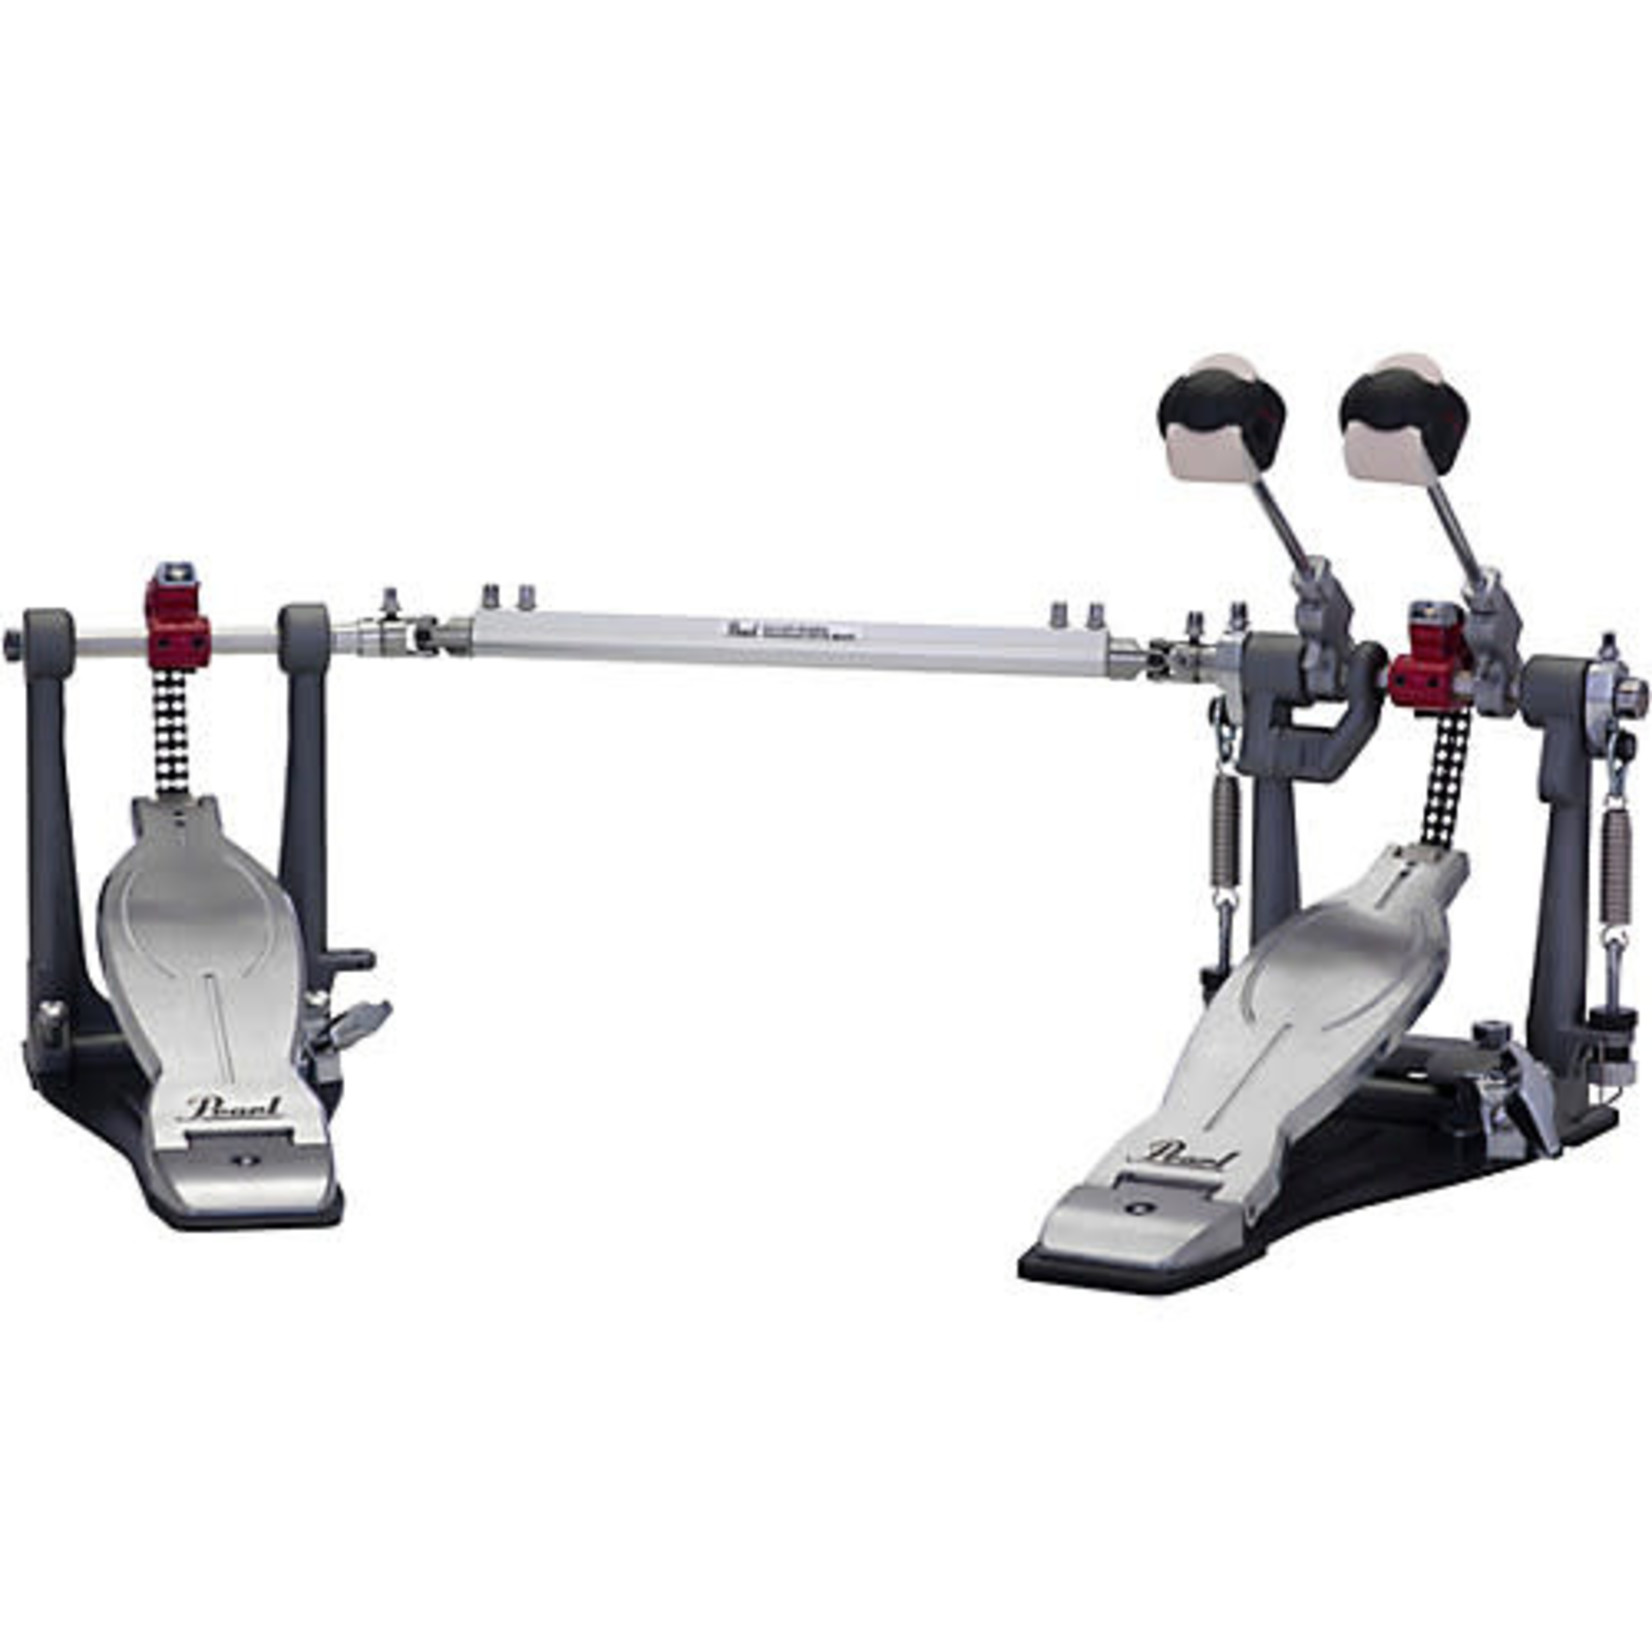 Pearl PEARL ELIMINATOR SOLO DOUBLE PEDAL RED P1032R